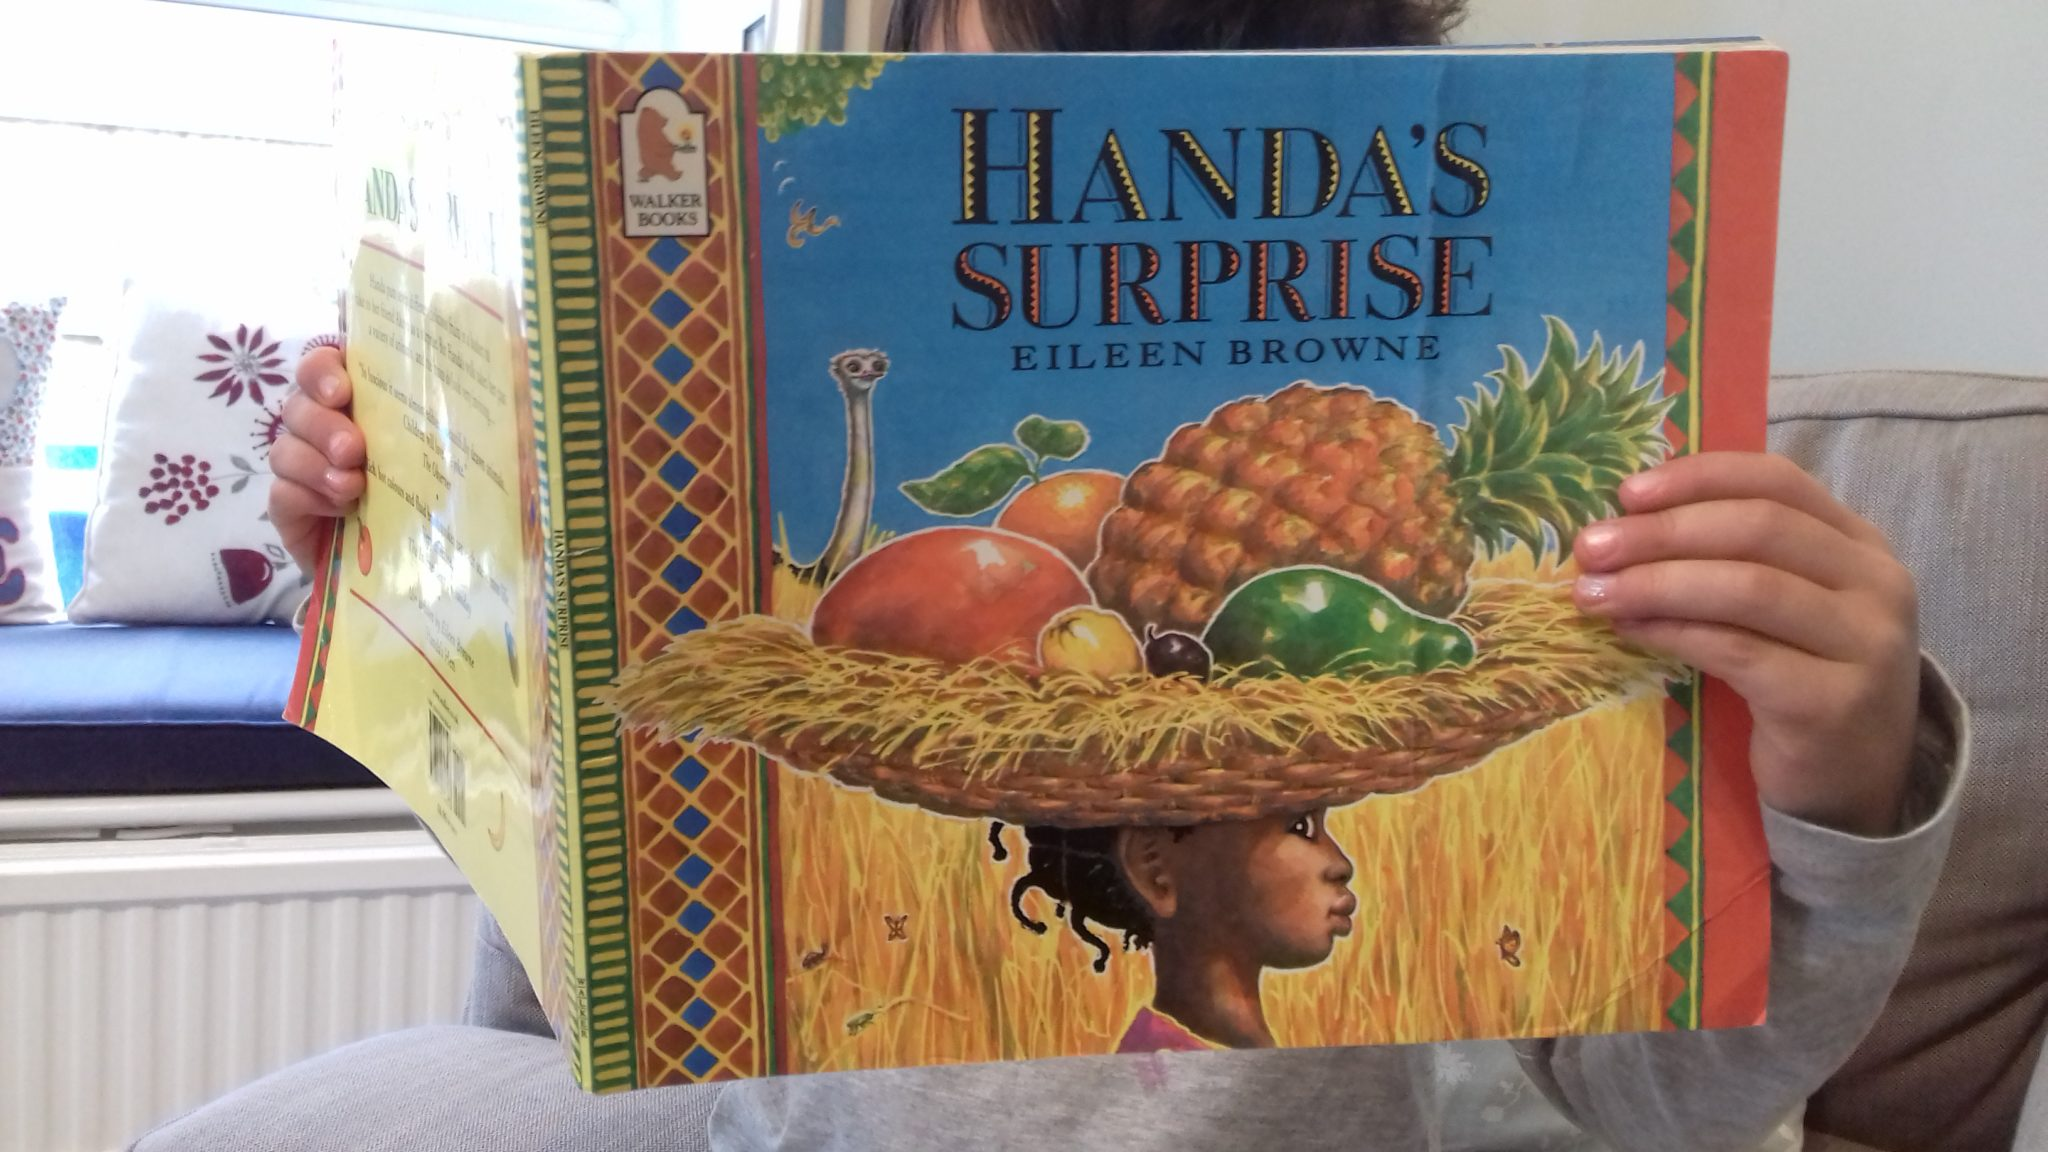 Handa's Surprise - Looking for multicultural books for your children? This list features 25+ of the best diversity books about race and culture for the kids in your family or your classroom.